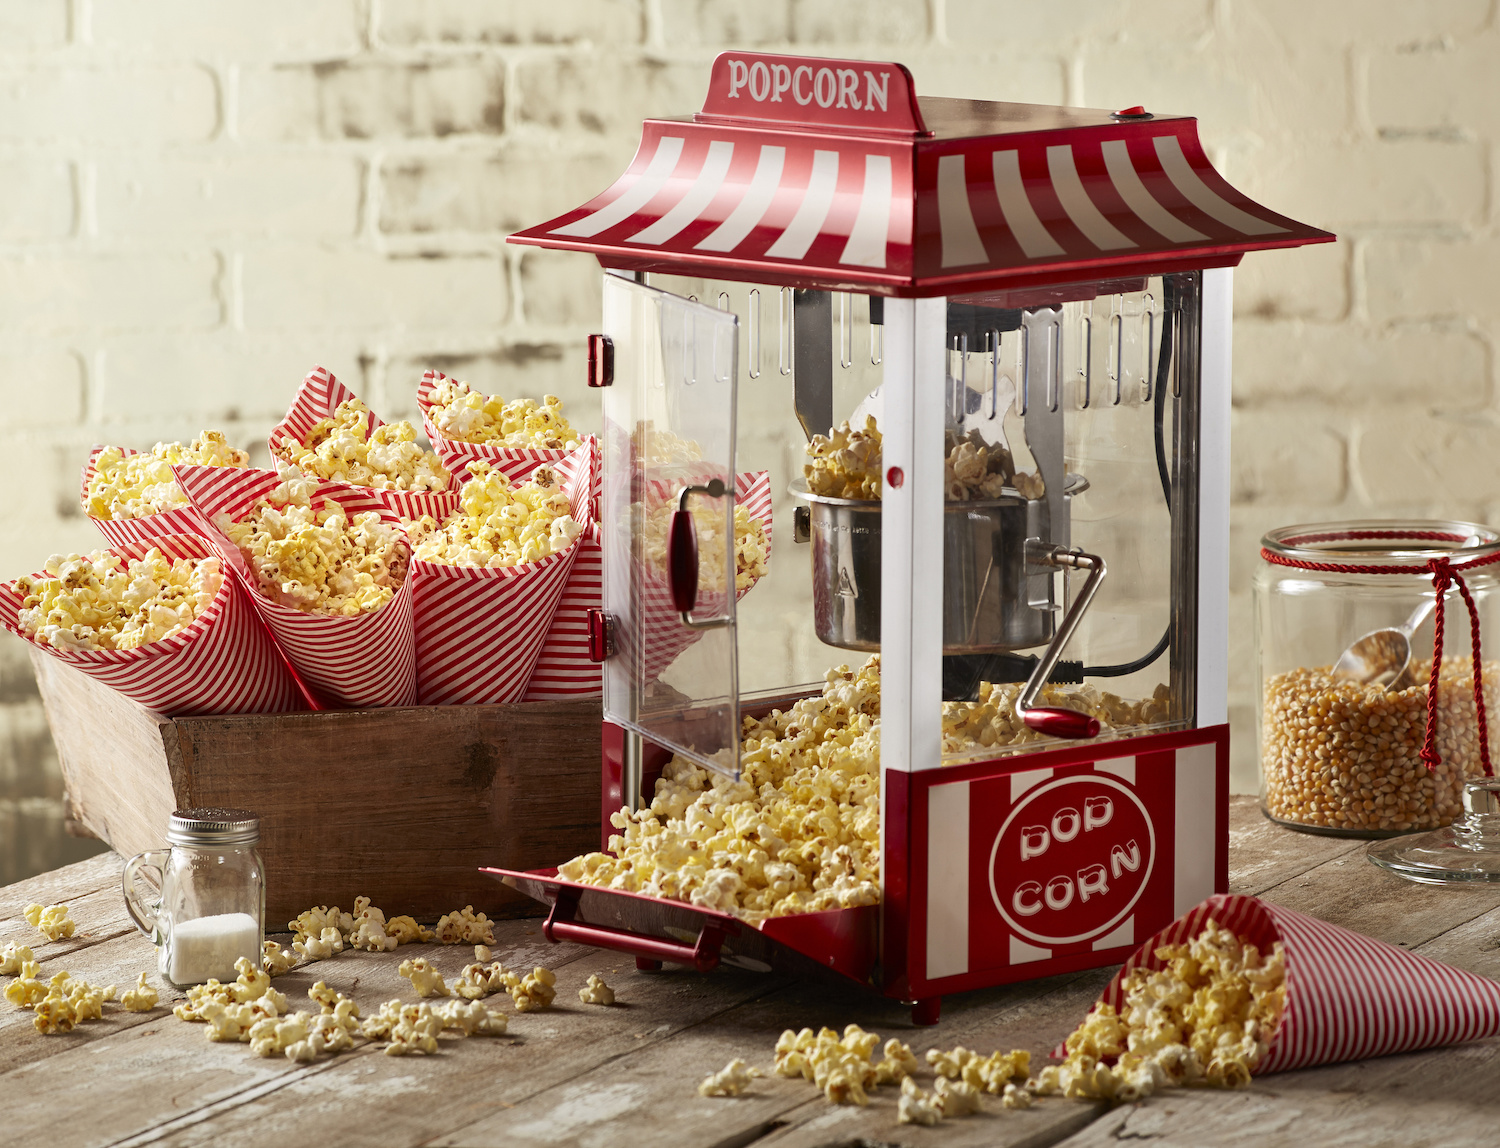 How To Use a Popcorn Machine